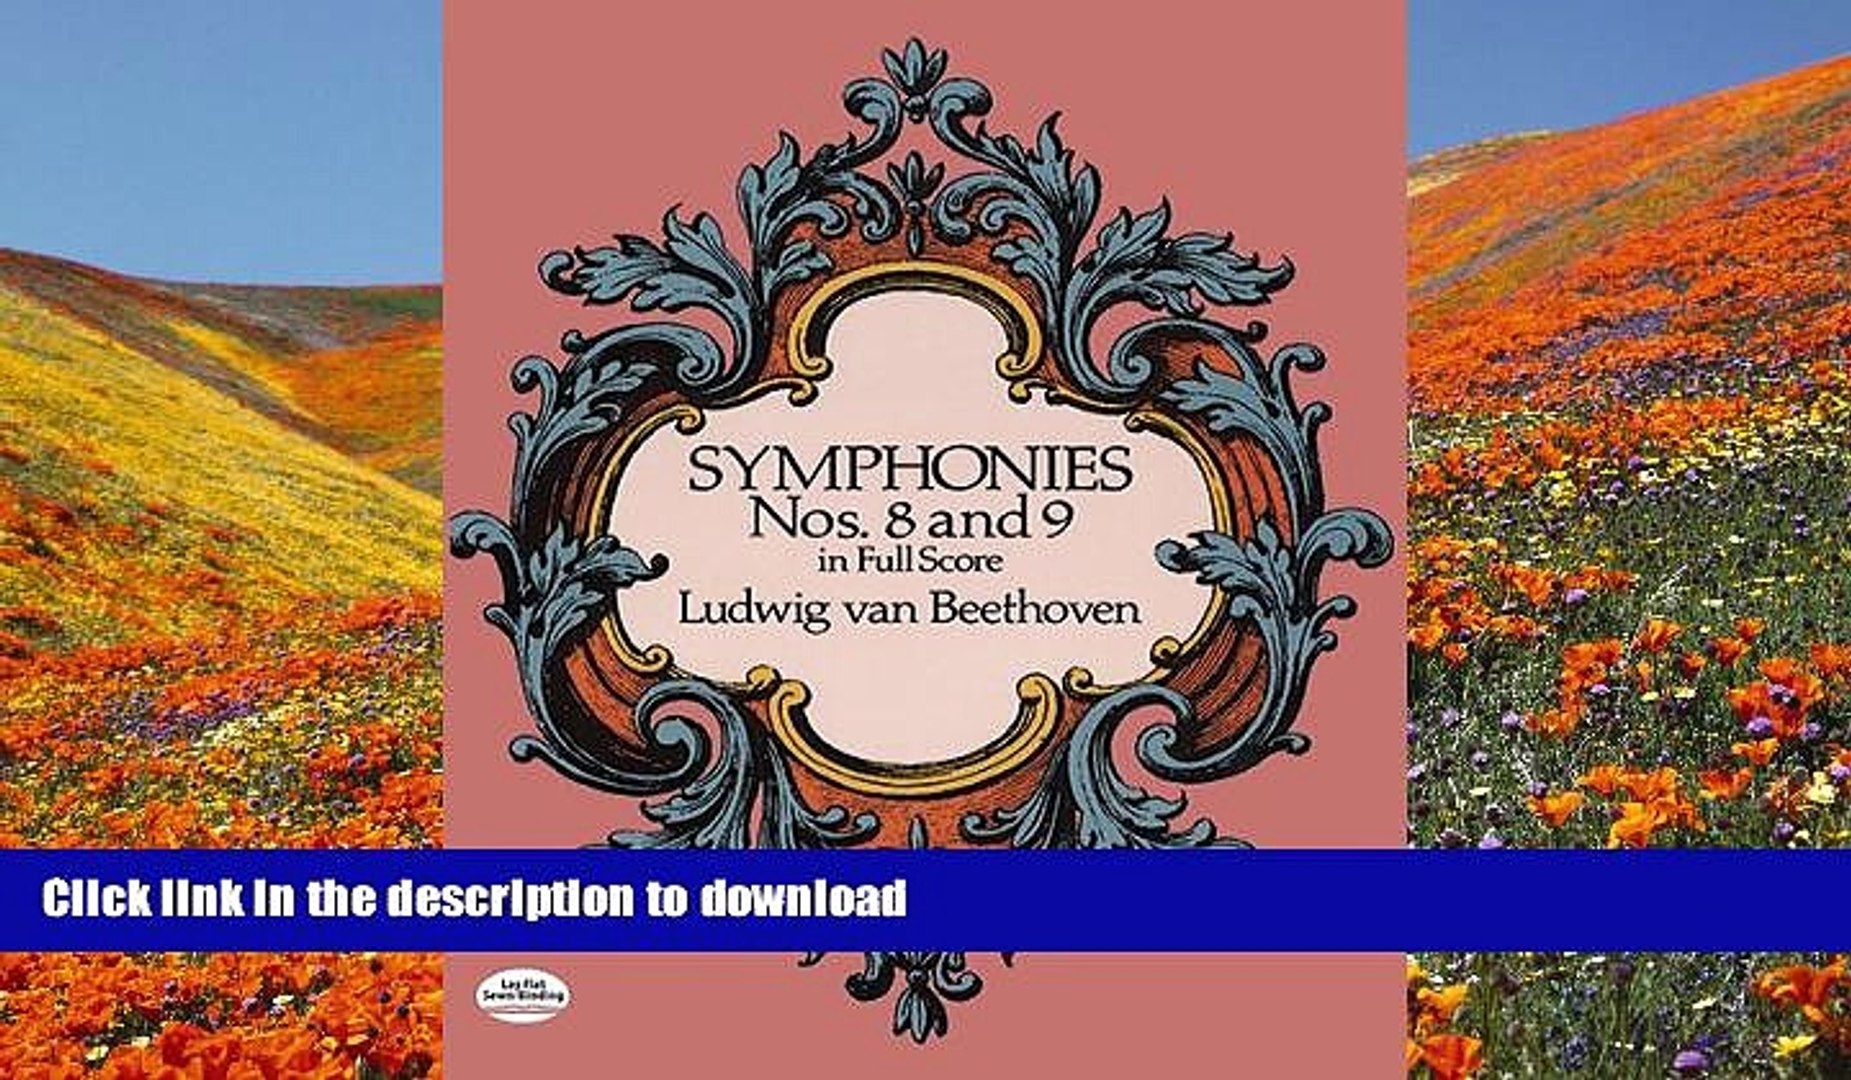 FREE [DOWNLOAD] Symphonies Nos  8 and 9 in Full Score (Dover Music Scores)  Ludwig van Beethoven